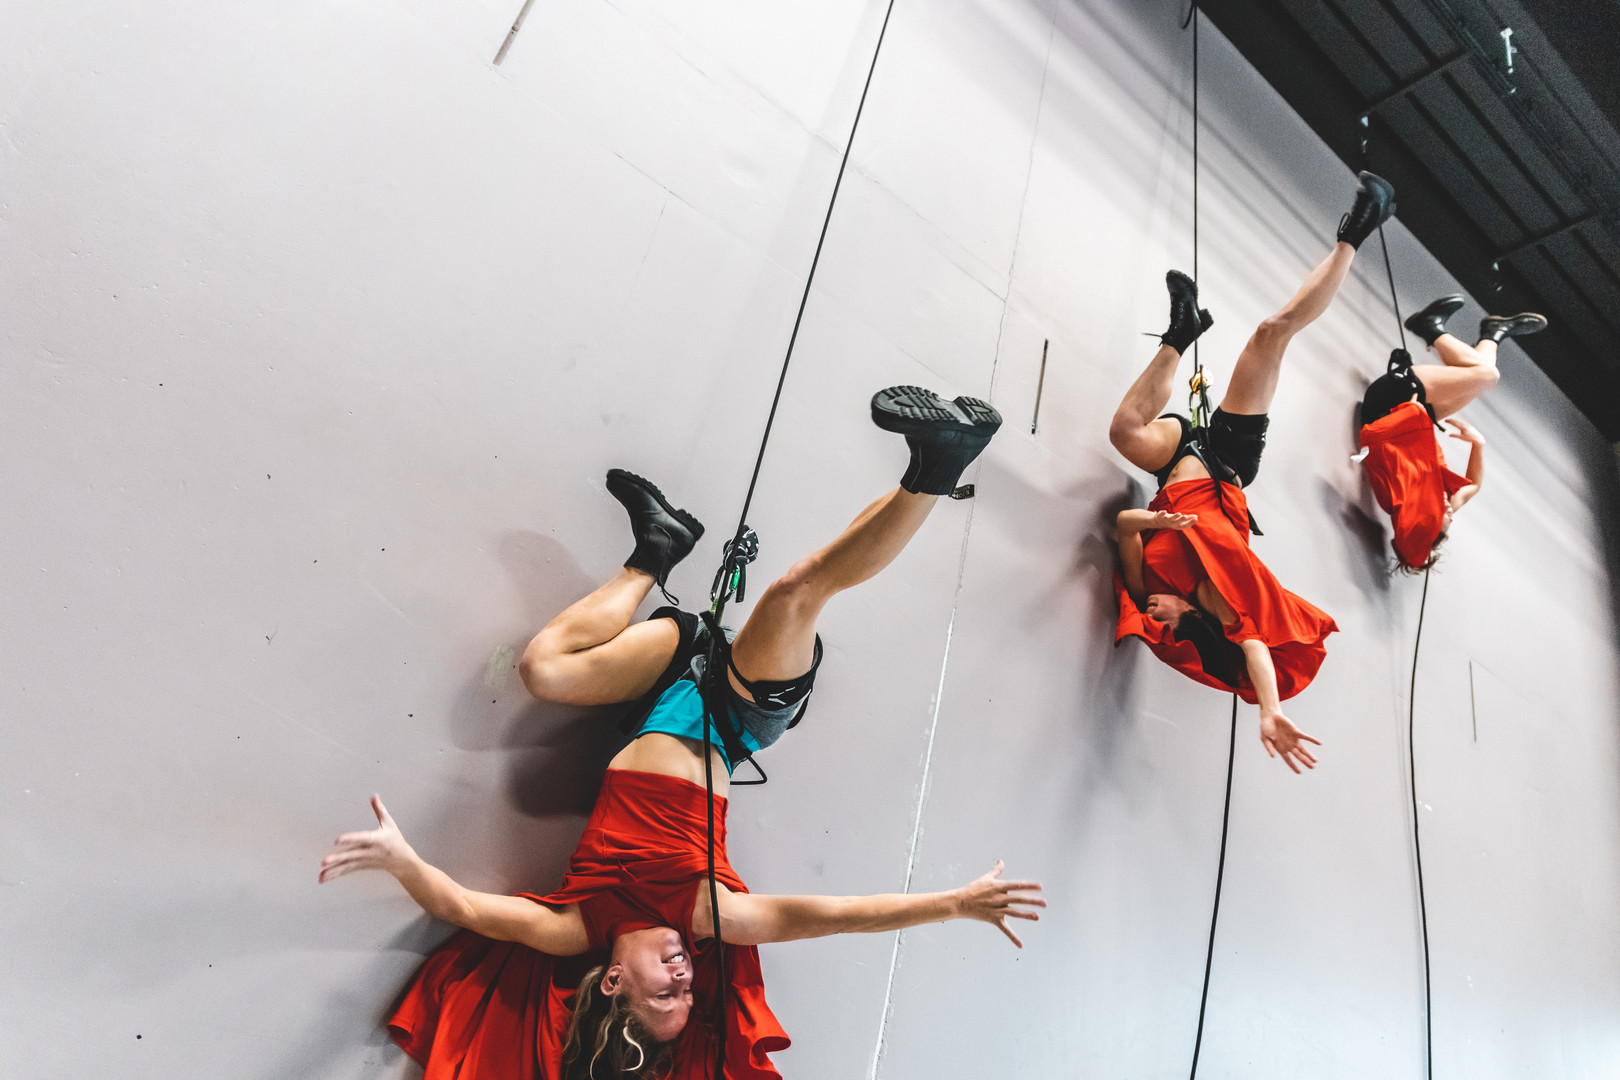 Production: She Who Dares/ photoshoot (Off The Wall Aerial Dance Circus) Photo: Dan Martin